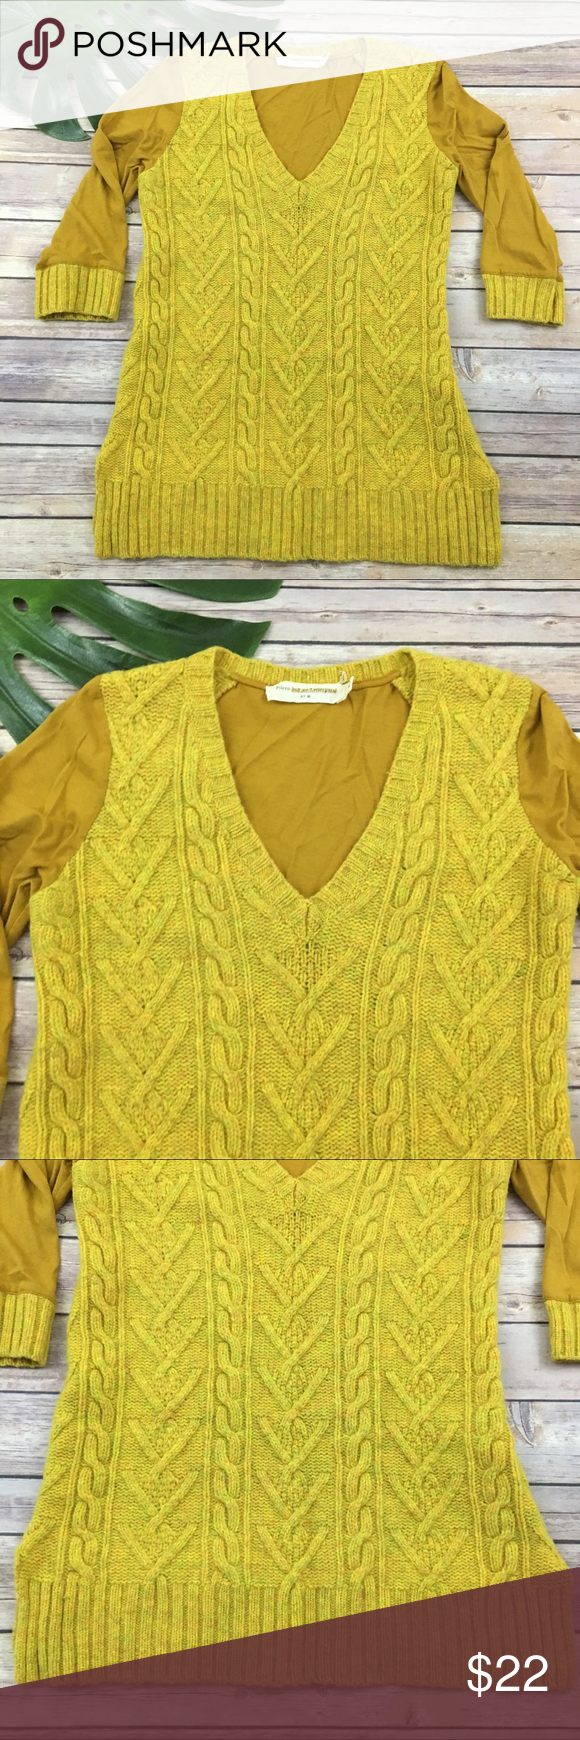 Pilcro mustard yellow cable knit sweater | Cable knit sweaters ...